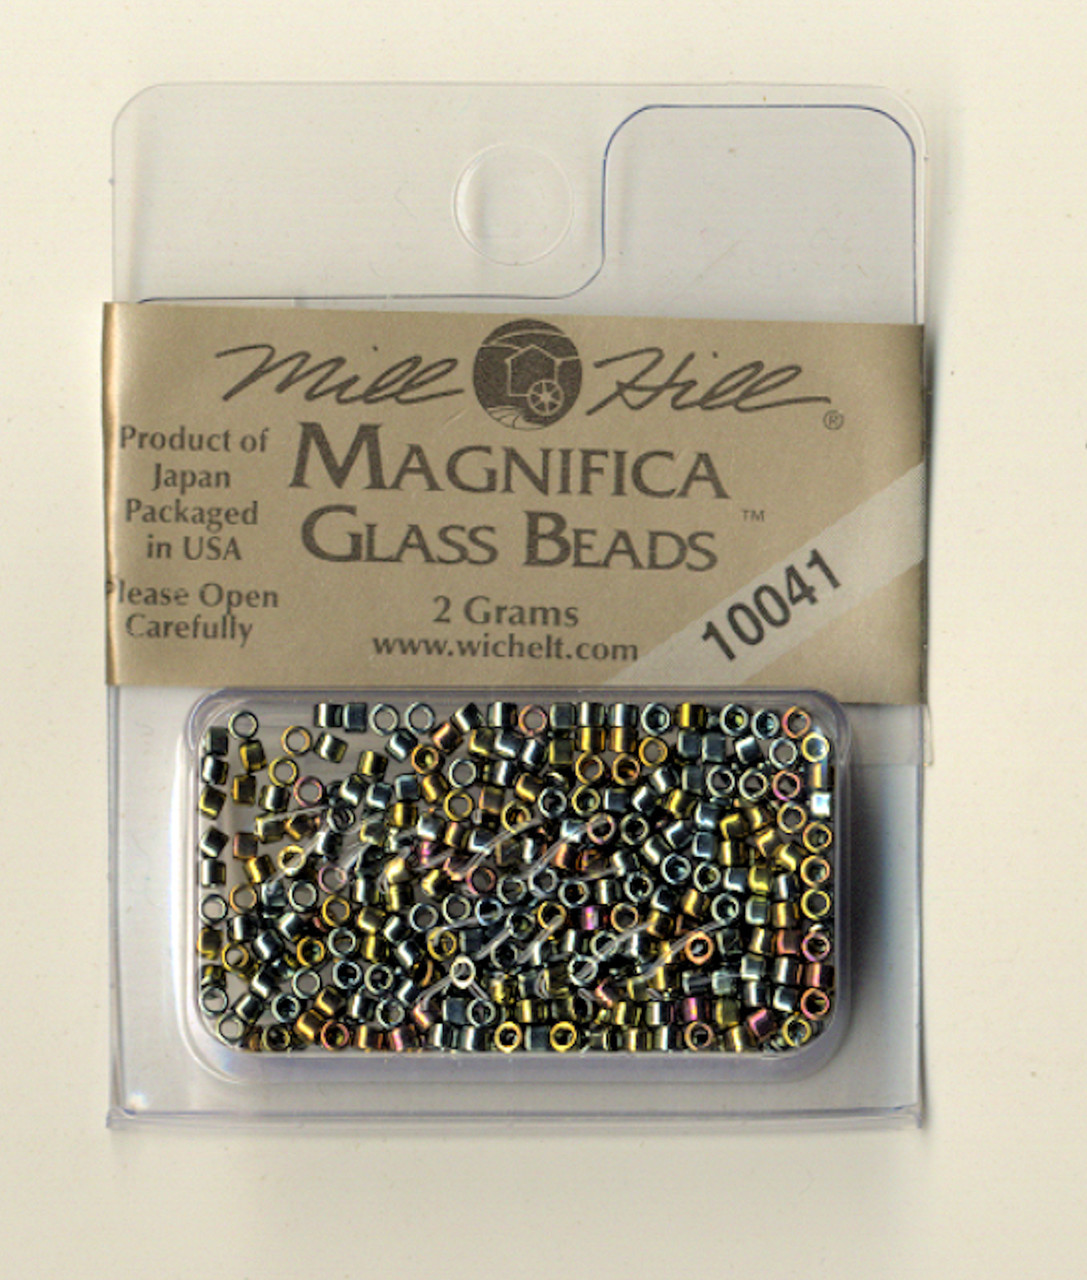 Mill Hill Magnifica Glass Beads 2g - Abalone  #10041